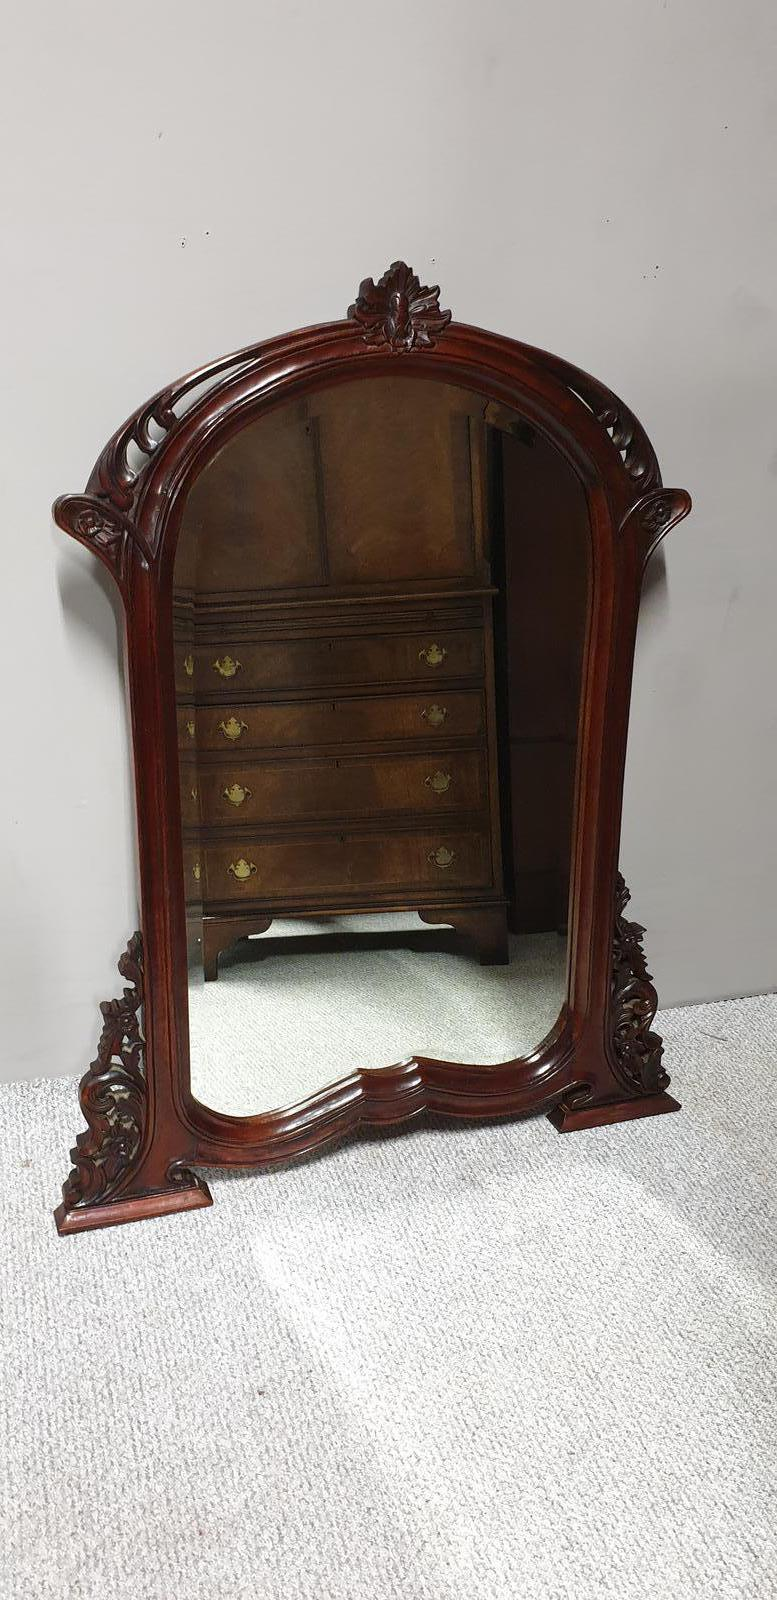 Carved Mahogany Overmantle Mirror (1 of 1)